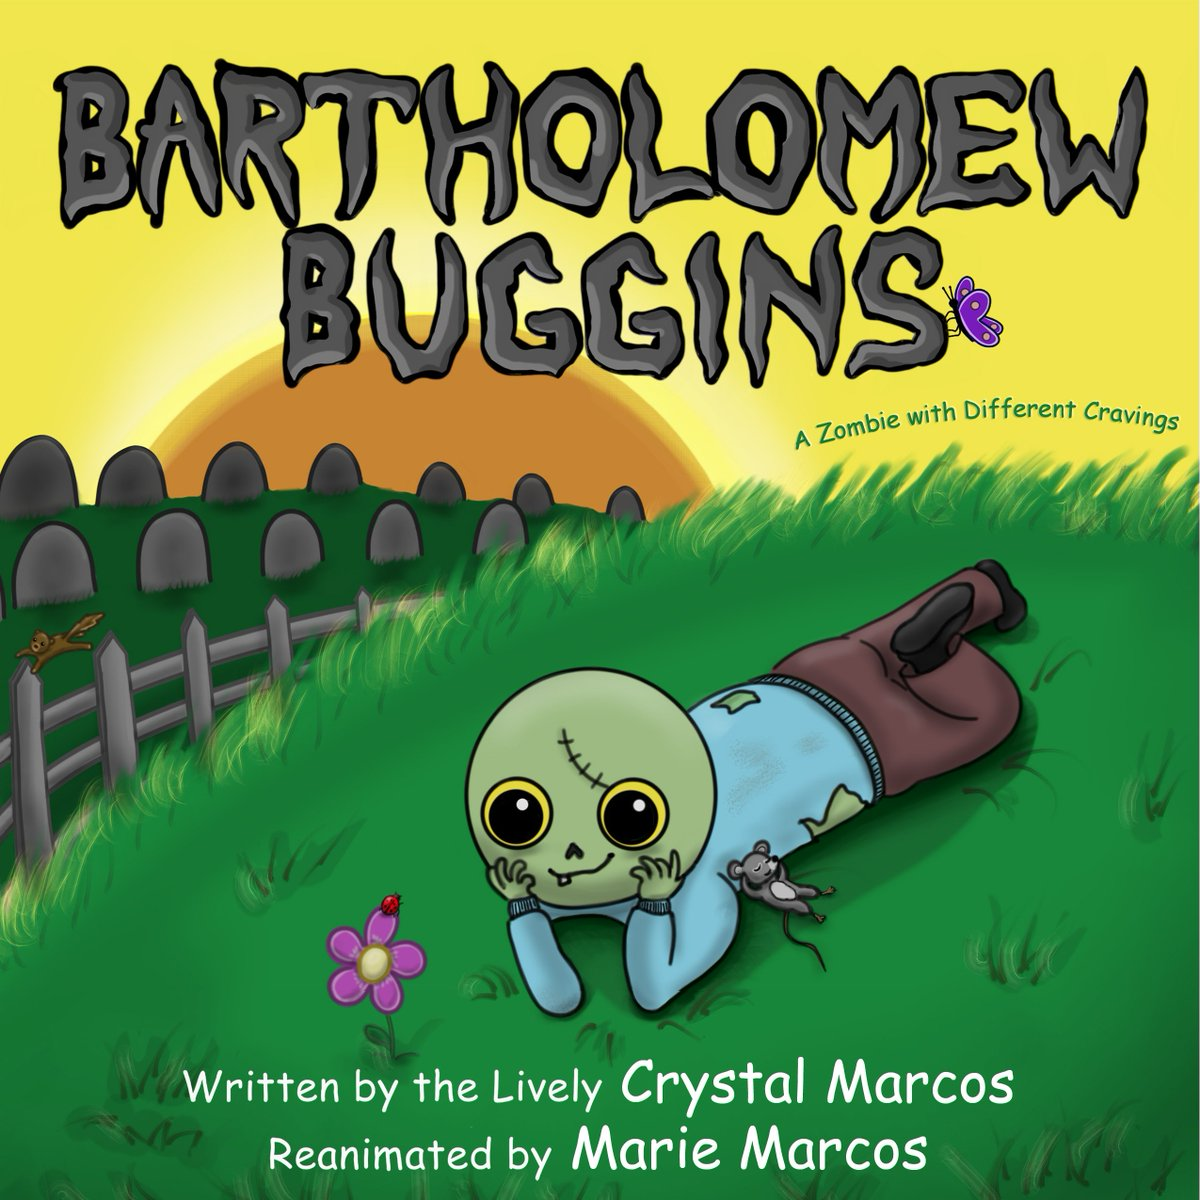 From Award-winning Author @ CrystalMarcos.  2018 Florida Book Festival Honorable Mention! Bartholomew Buggins: A Zombie with Different Cravings  #ebook ChildrensBooks IARTG kidsbooks ASMSG http://viewbook.at/AmazonBBugginspic.twitter.com/hEw88yRzbt